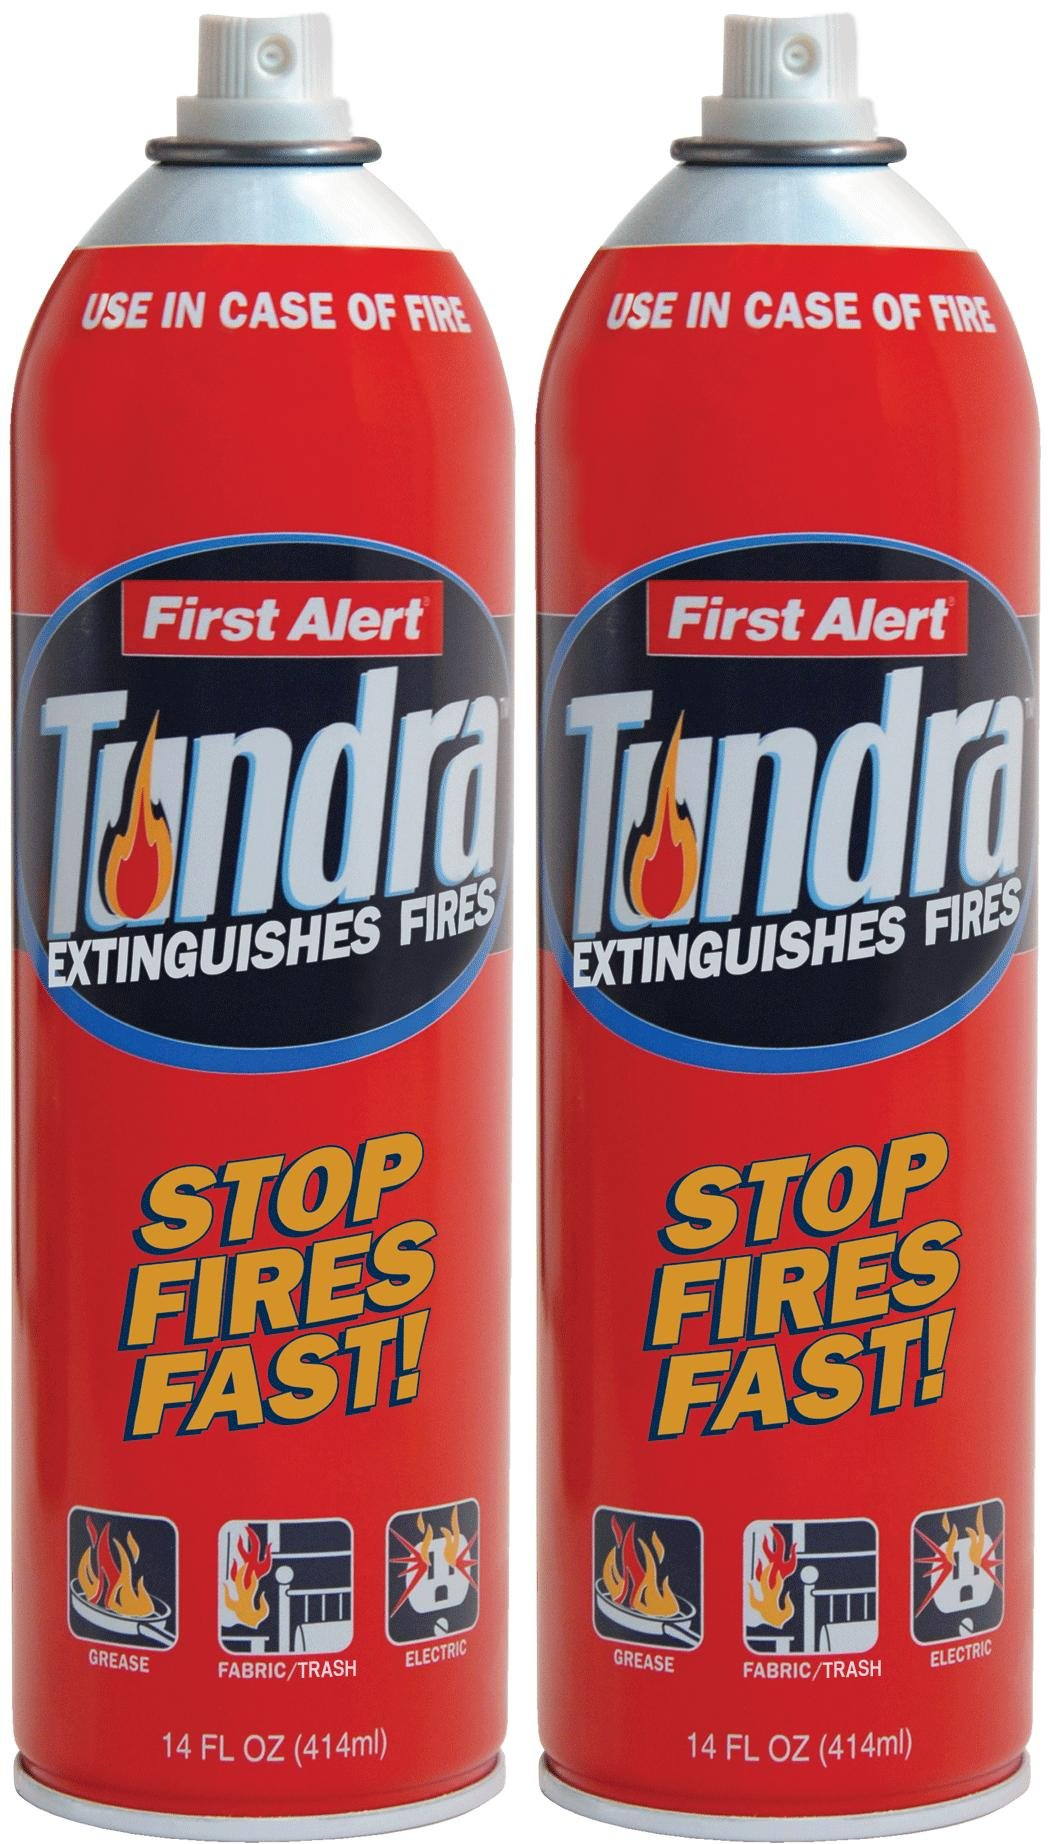 First Alert AF400-2 Tundra Fire Extinguishing Aerosol Spray, Pack of 2